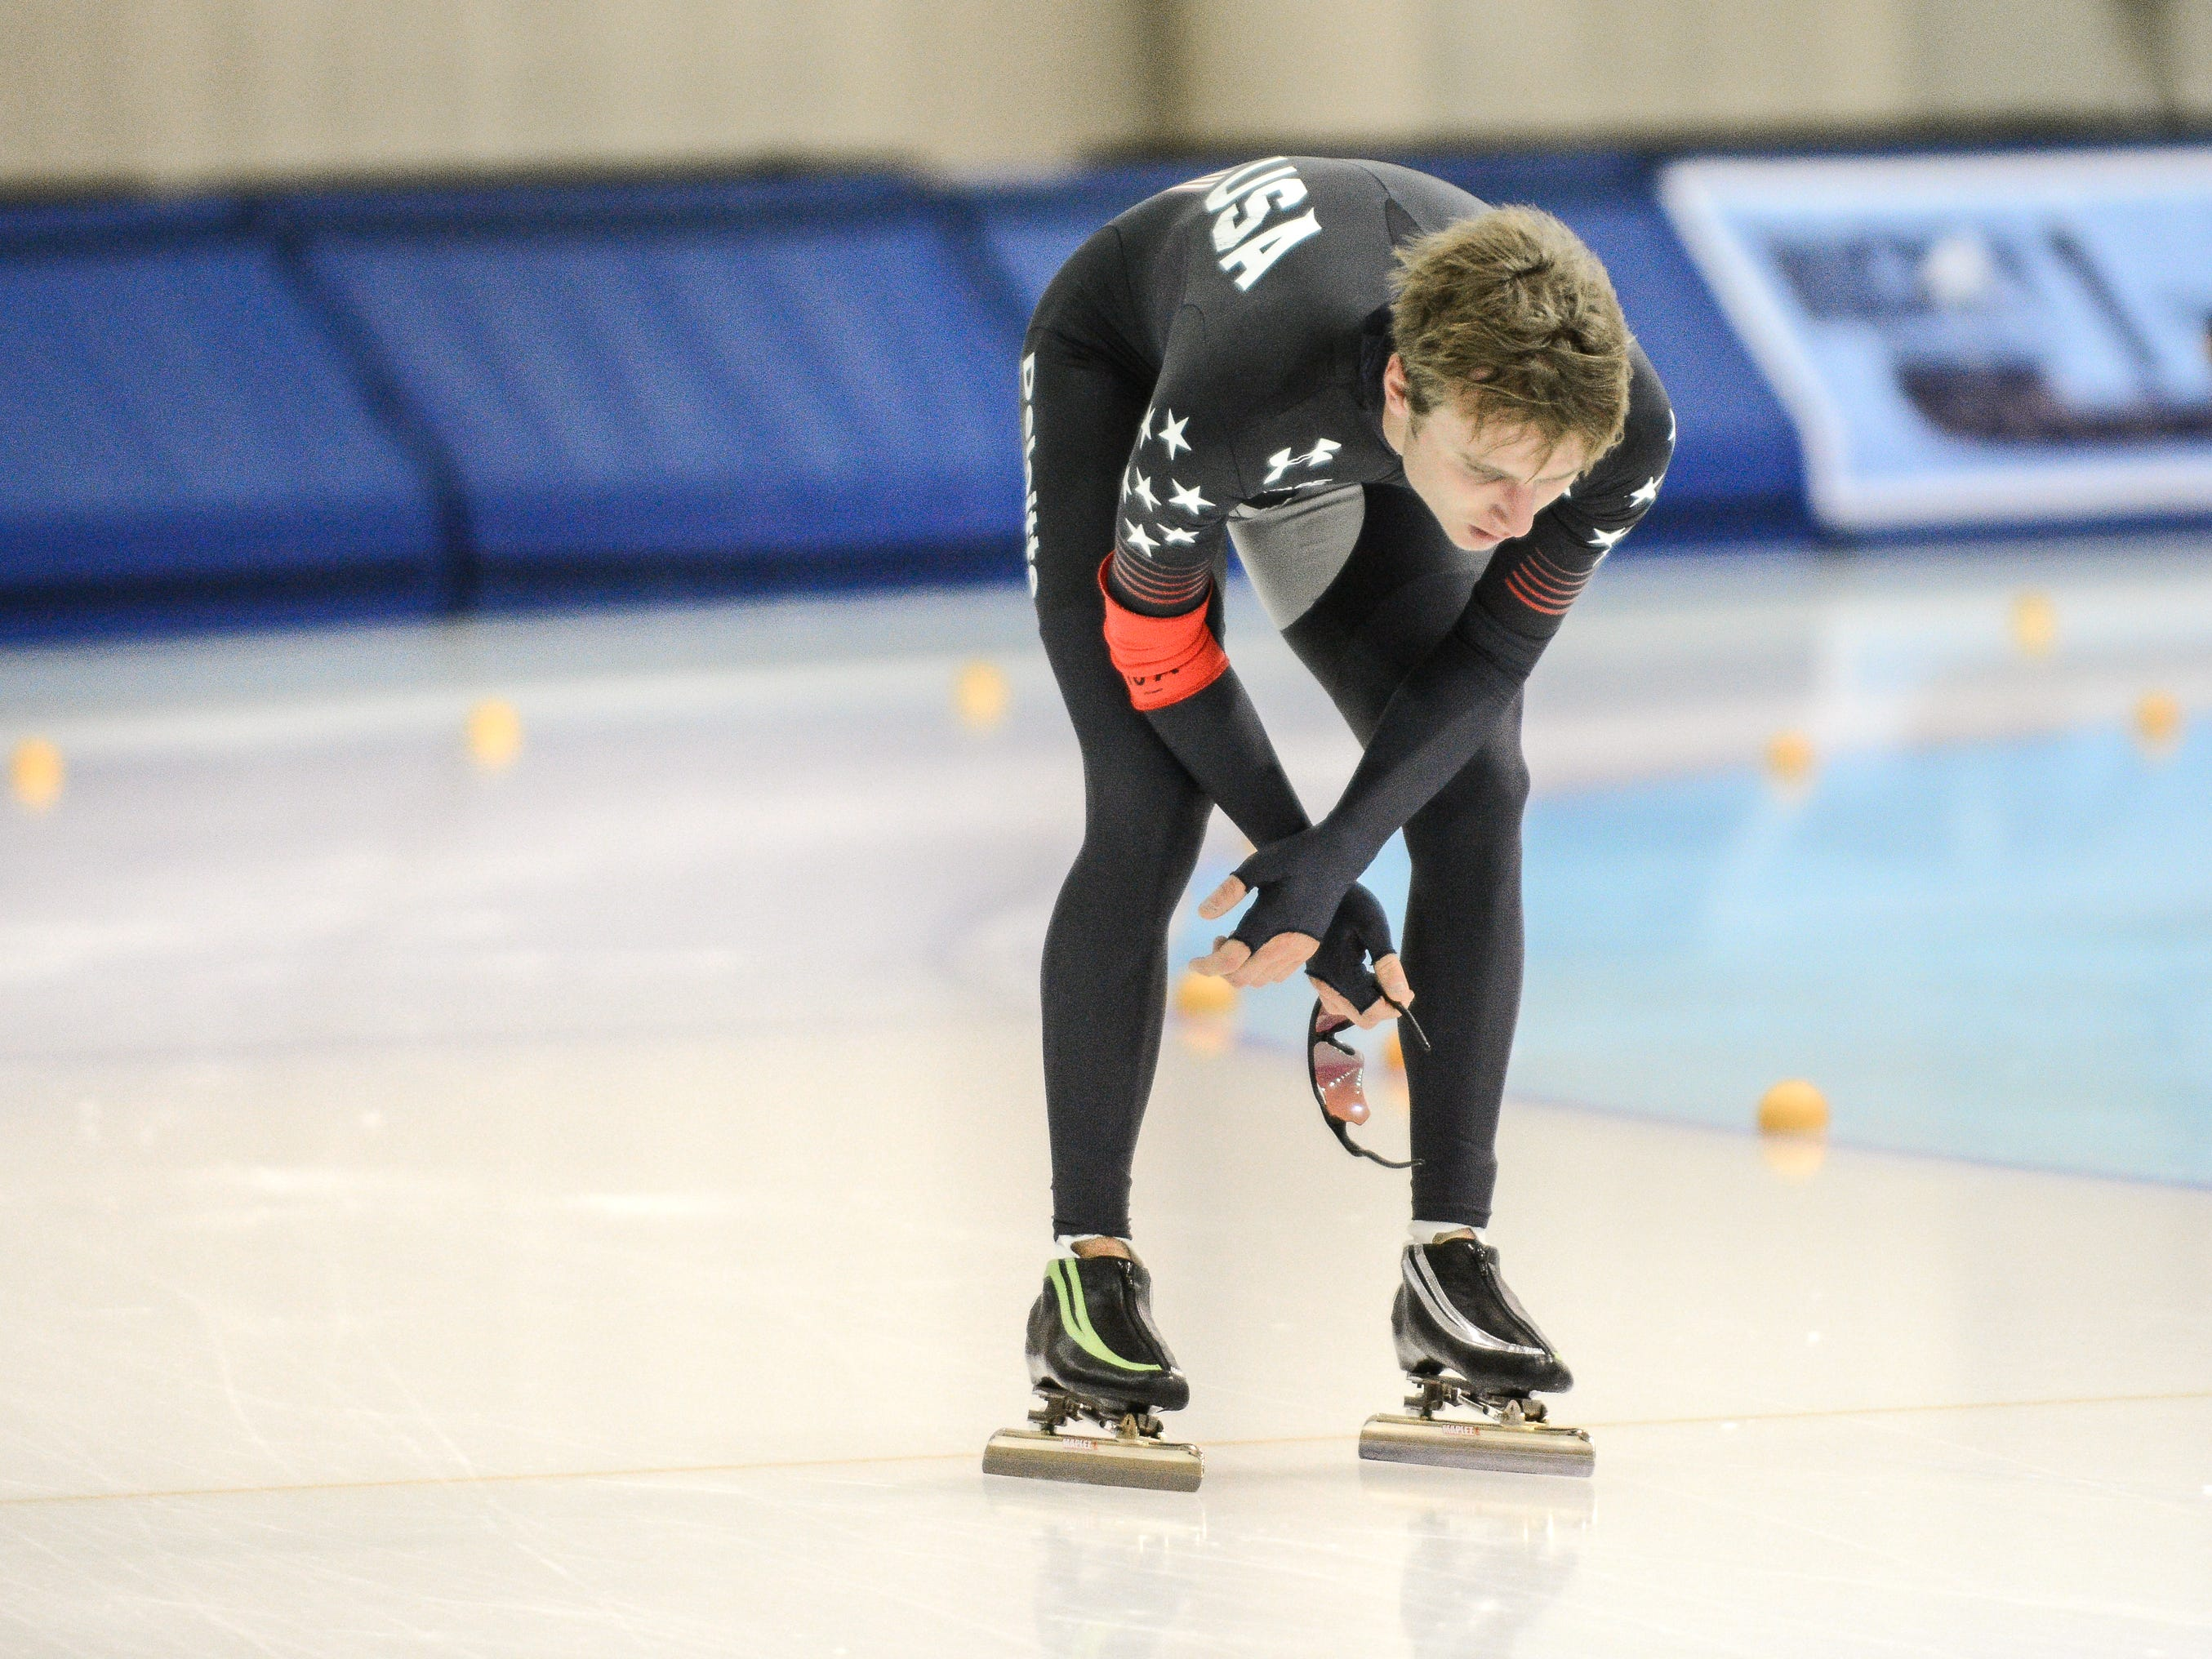 Men's 10,000 meters winner Ian Quinn catches his breath after his race at the U.S. World Cup qualifying event Sunday, November 4, 2018, at the Pettit National Ice Center.